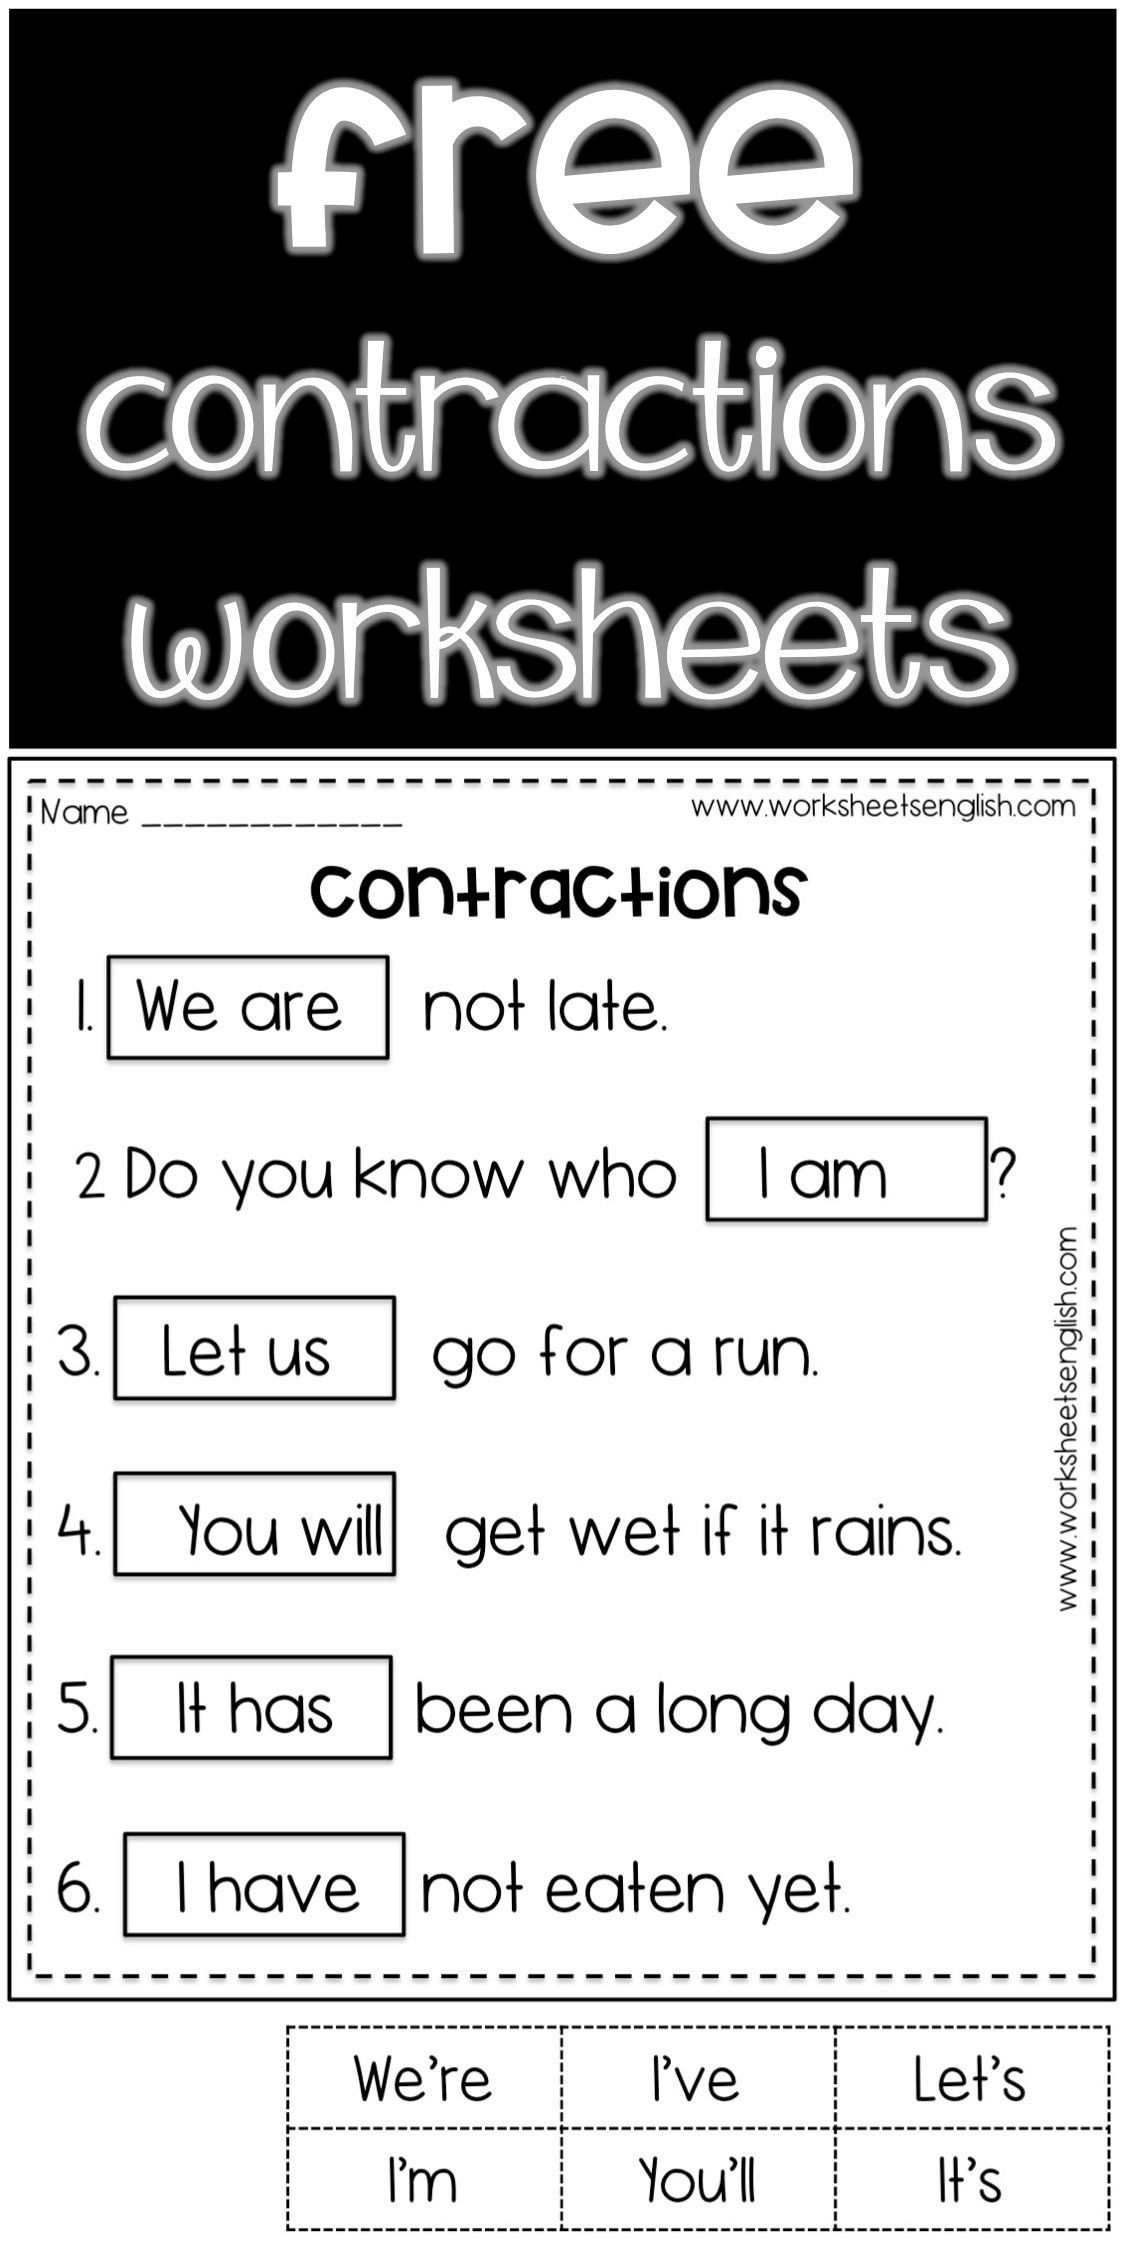 contractions in english FREE www.worksheetsenglish.com in 2021   Contraction  worksheet [ 2249 x 1125 Pixel ]